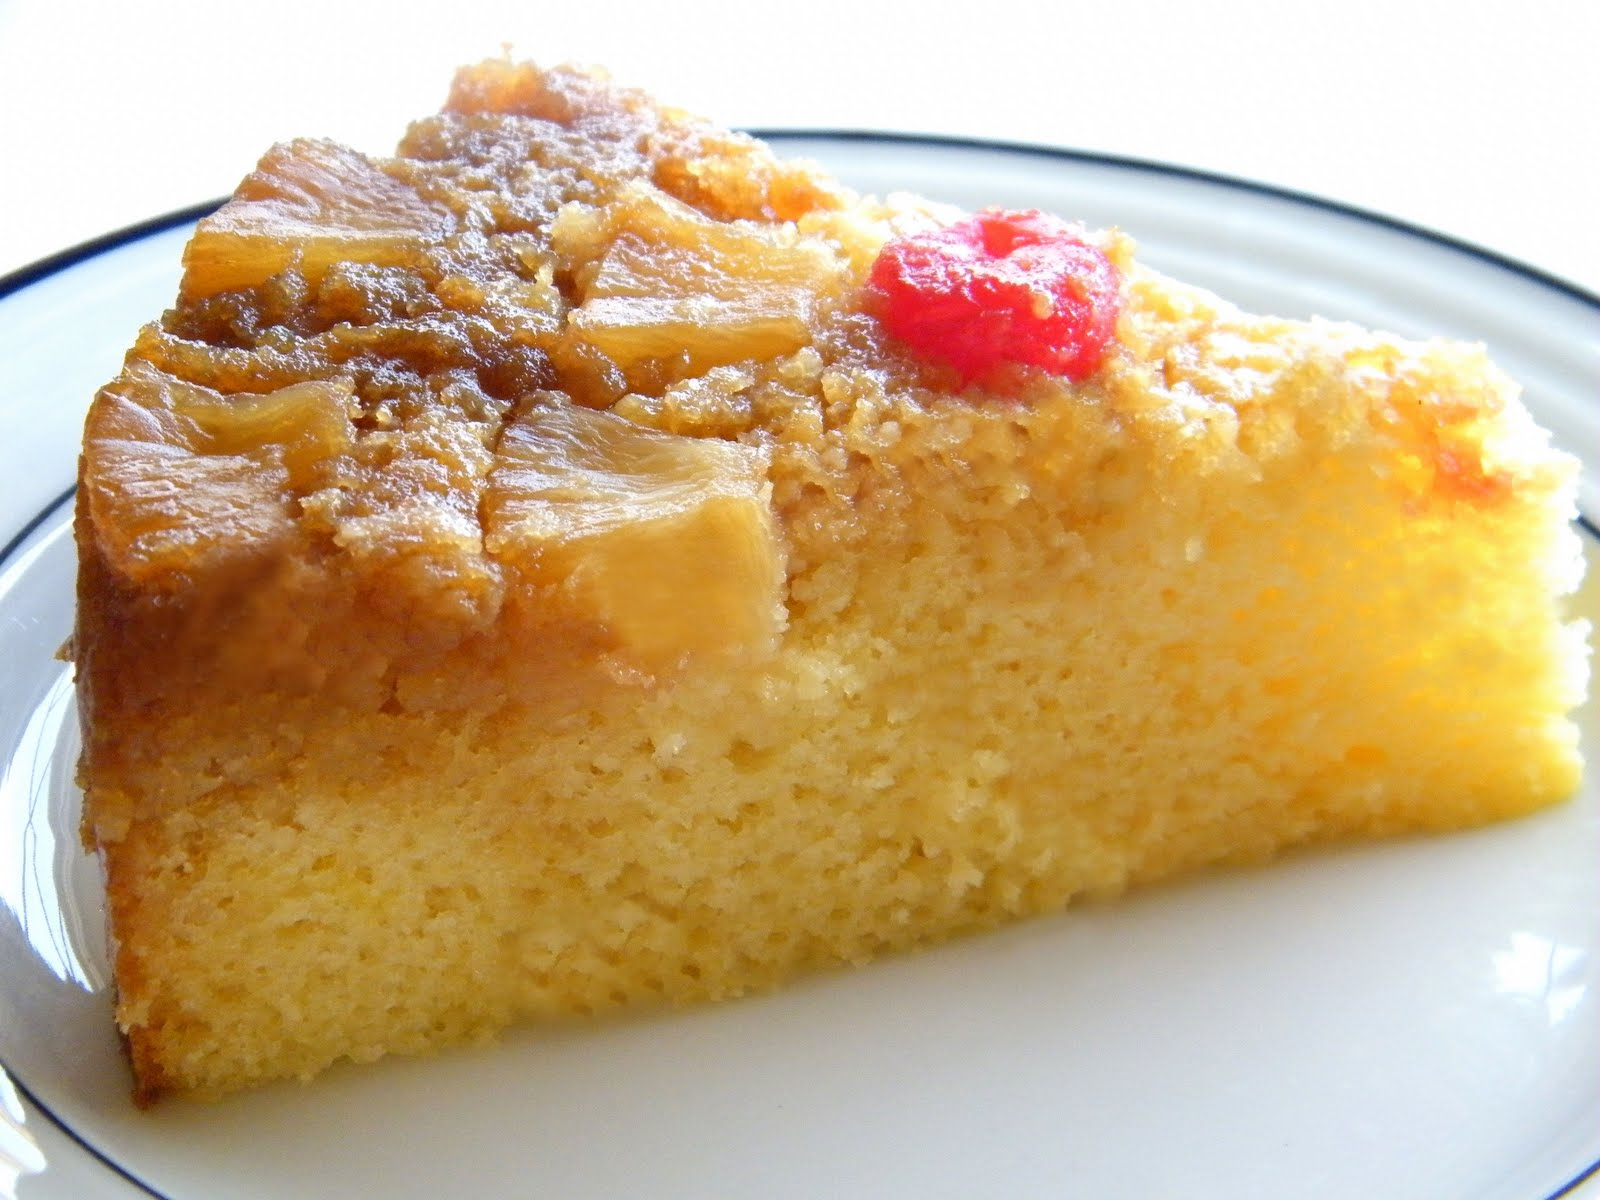 upside down cake eric wolitzky s pineapple upside down cake pineapple ...